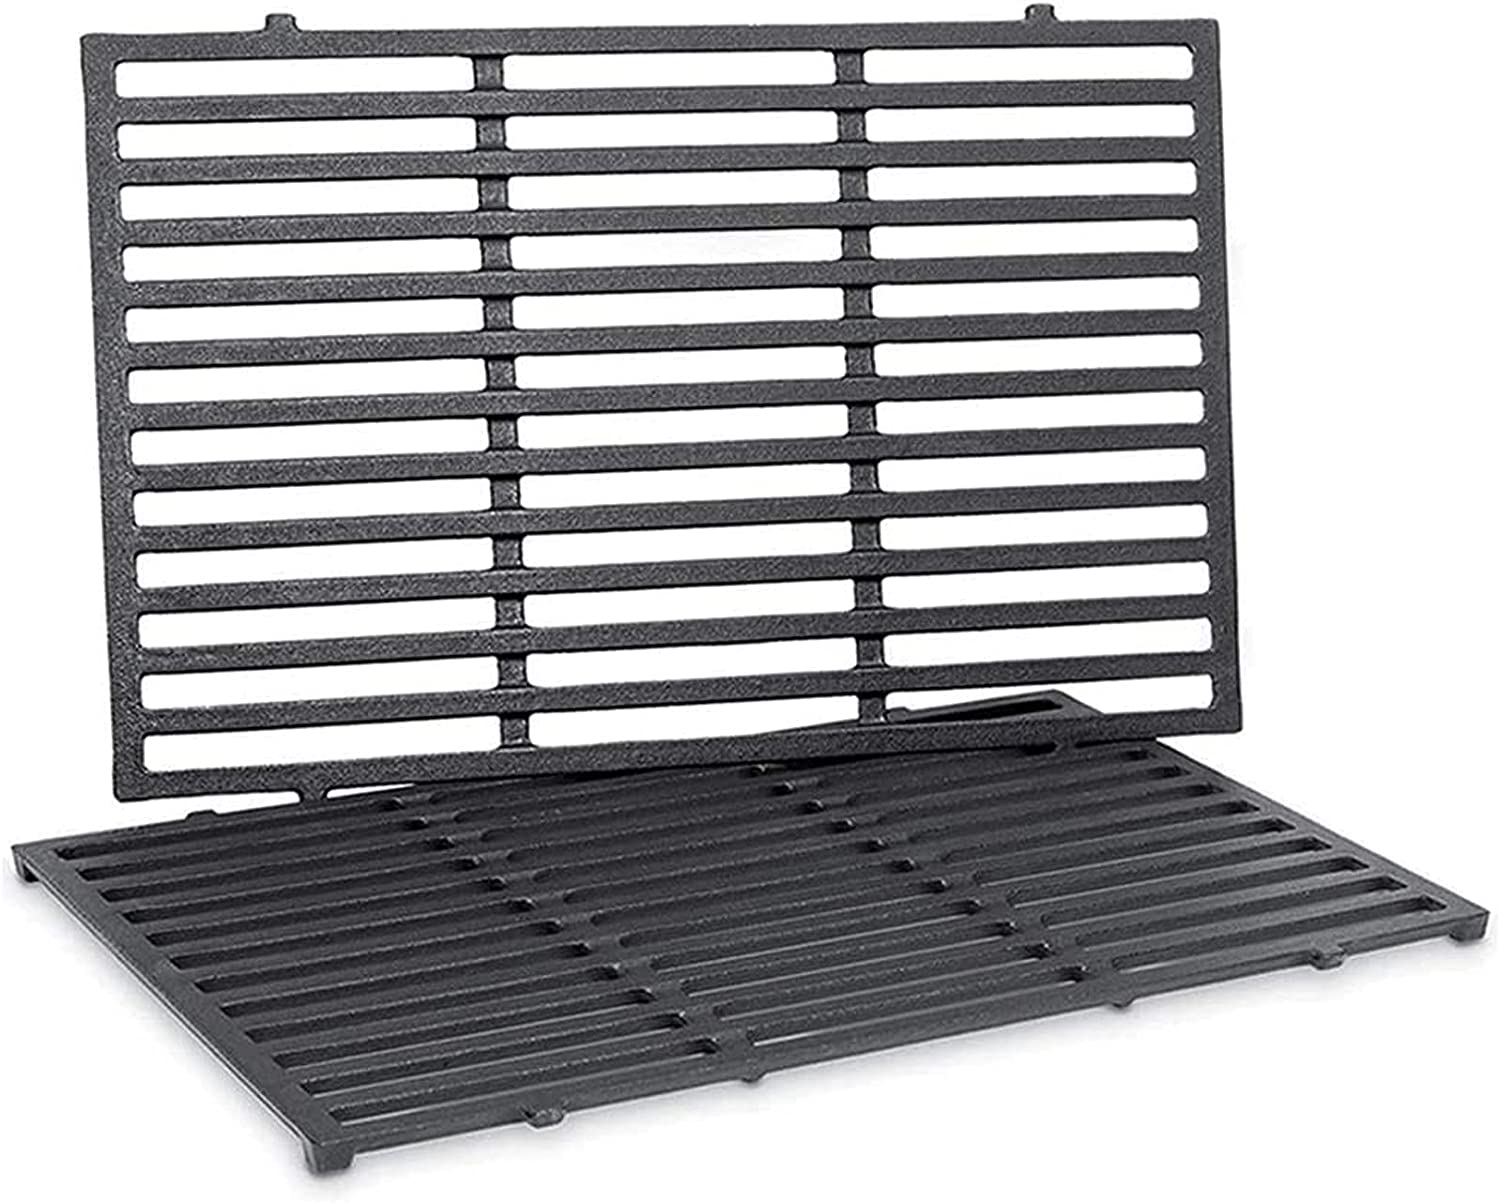 Uniflasy Dallas Mall 7524 Cooking Grates for Weber S and 300 E Genesis Selling Serie